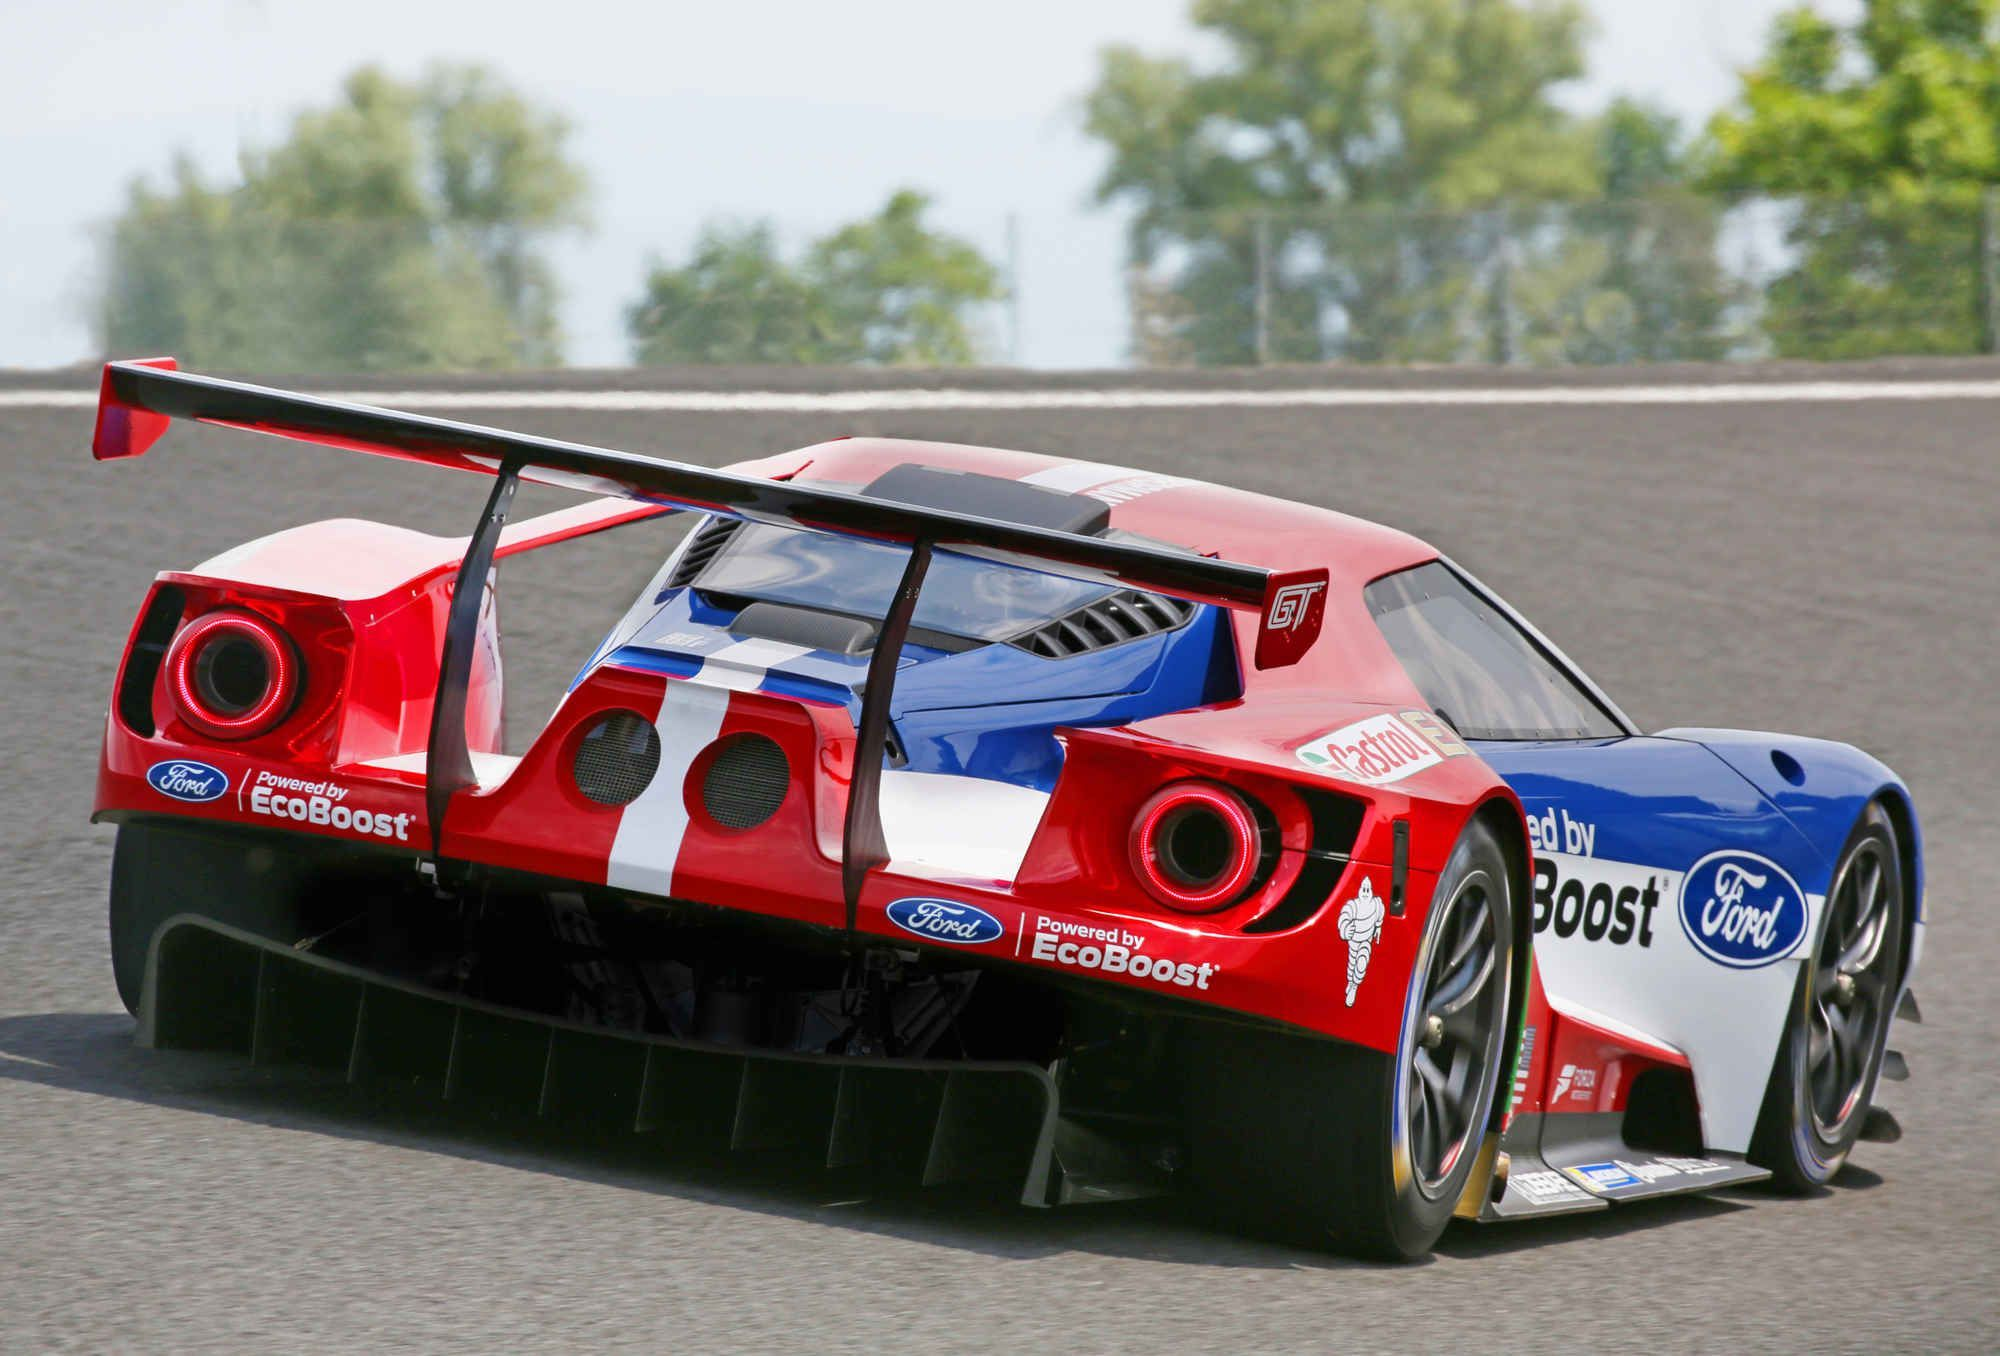 The Ford Gt With Images Ford Gt Ford Gt Le Mans Ford Racing